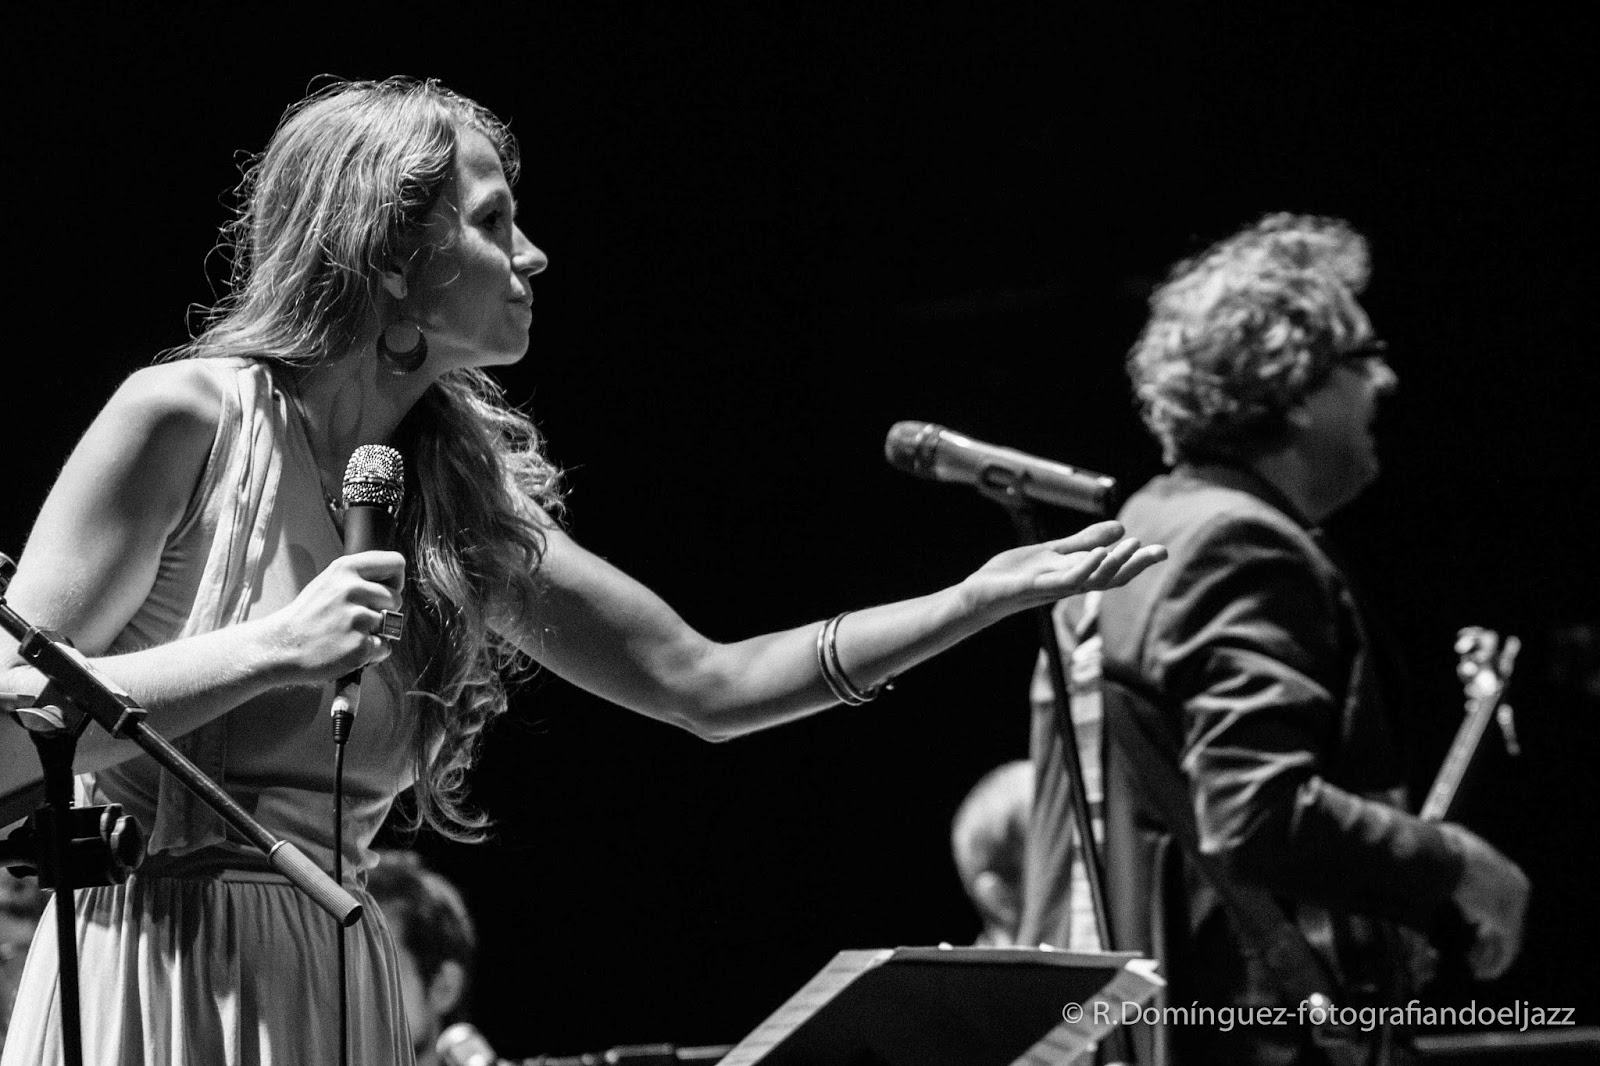 © R.Domínguez - Vicens Martín Dream Big Band & Gemma Abrié